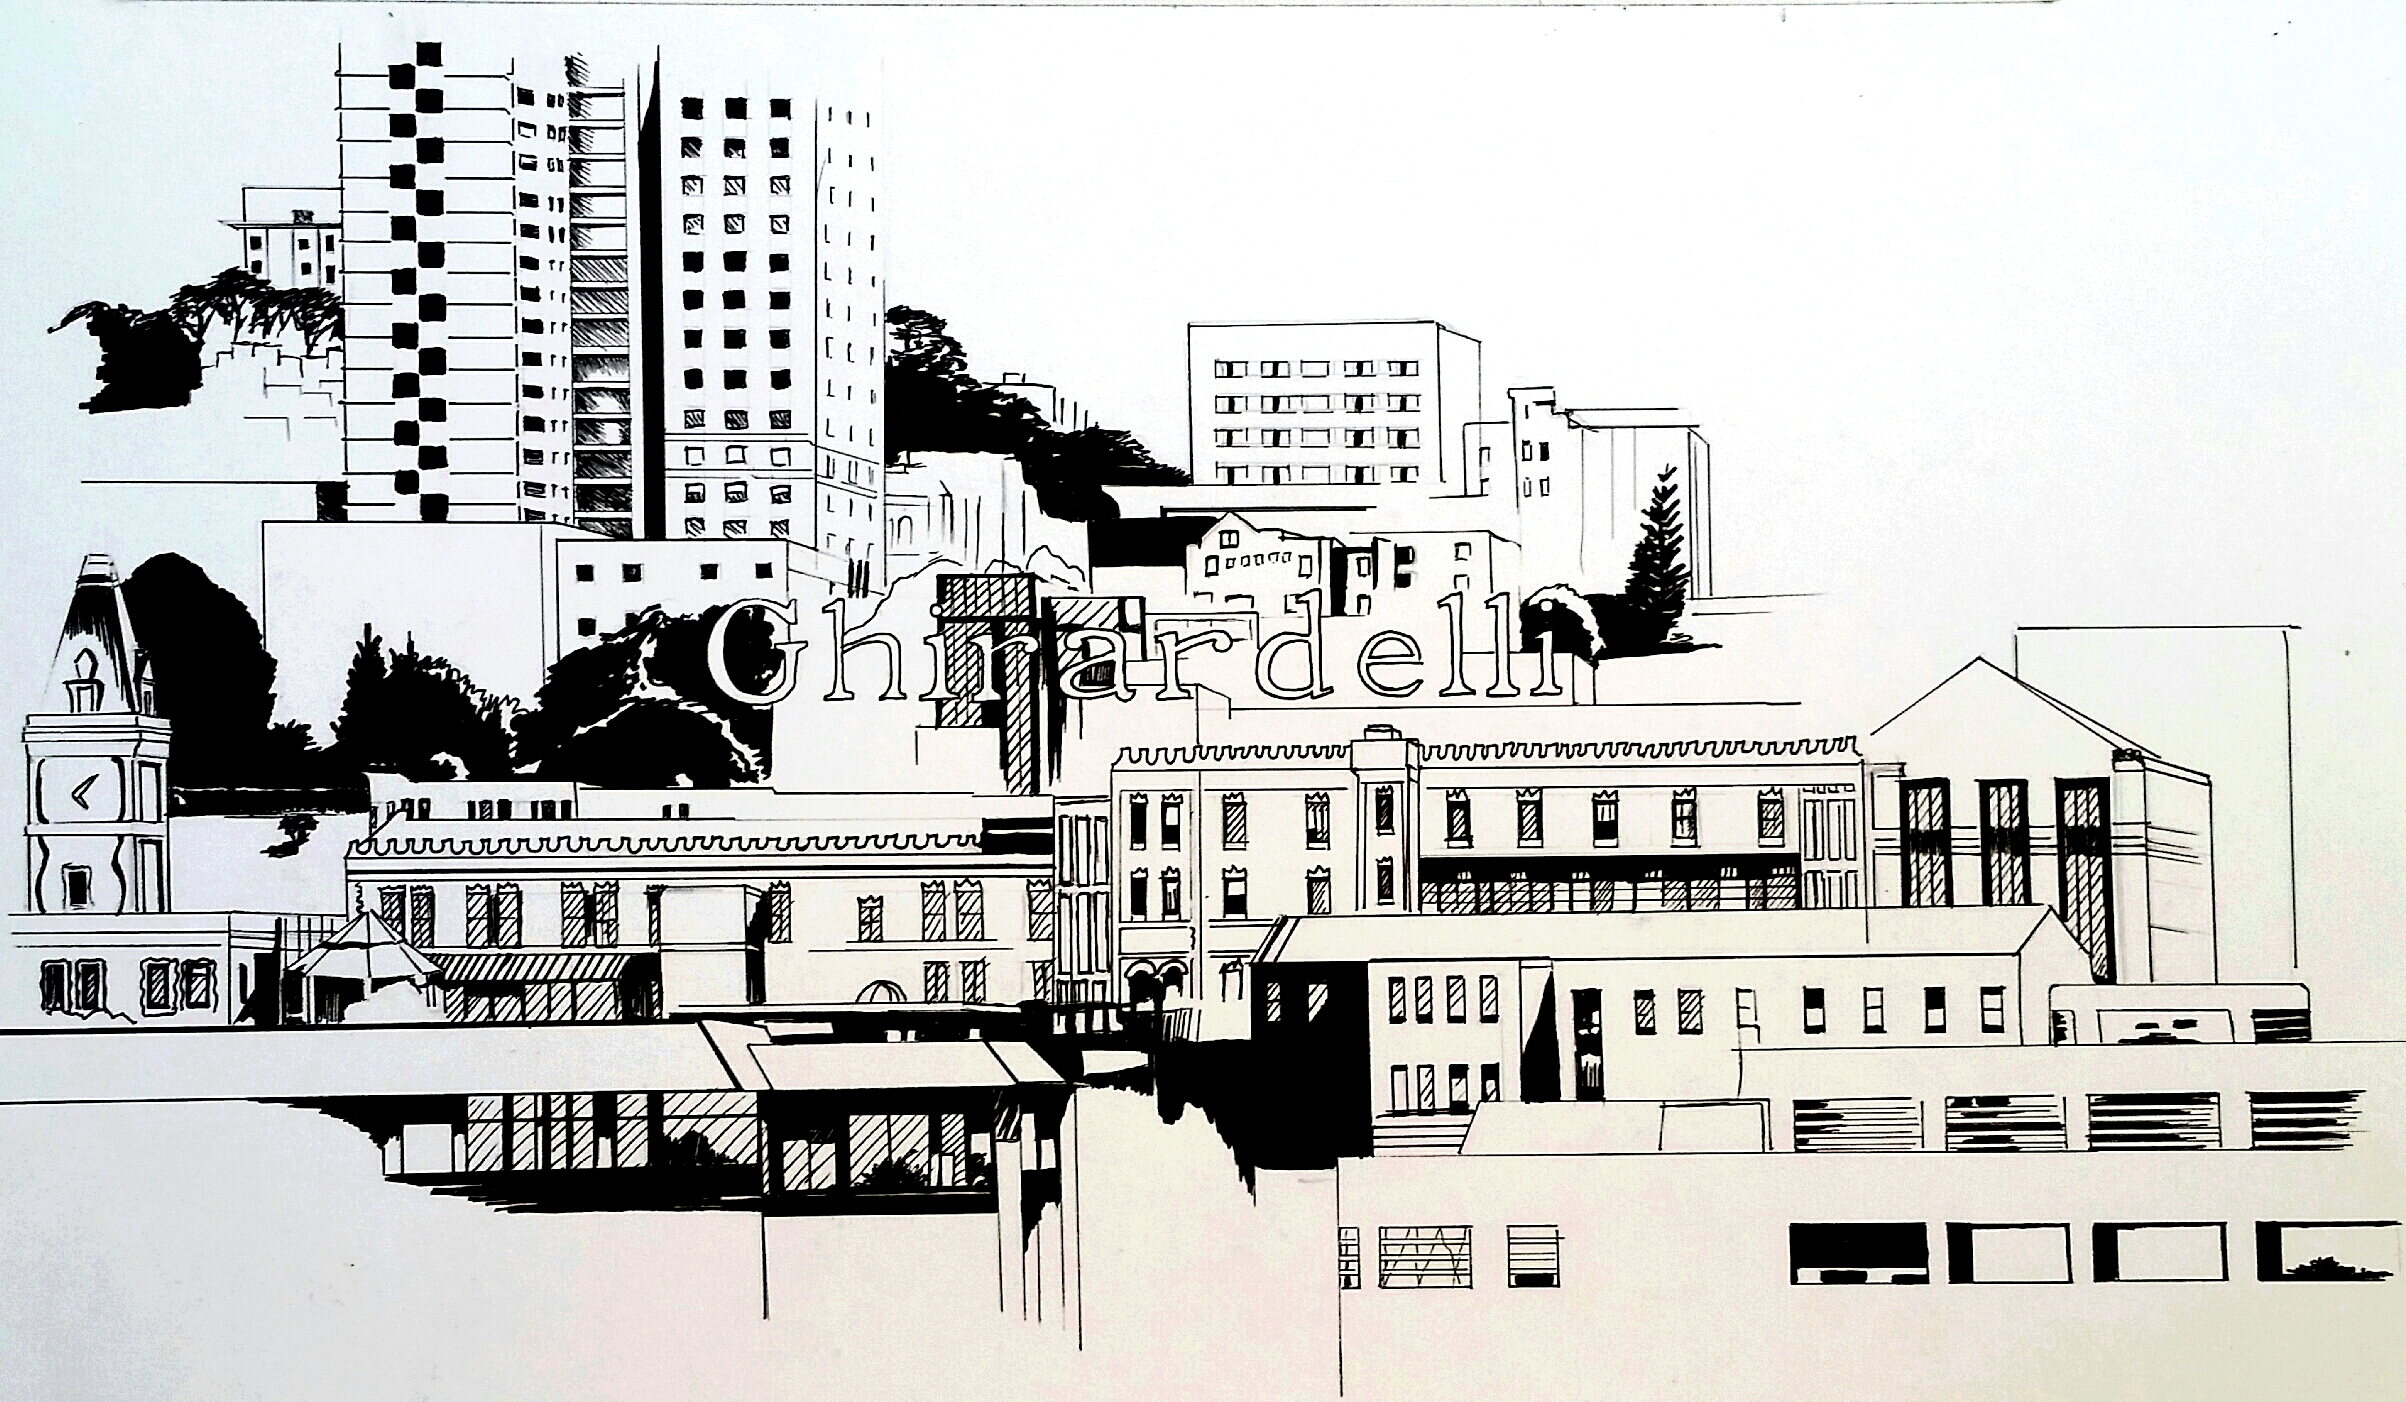 Pen and ink of part of the San Francisco skyline that includes the Ghirardelli sign. By Esther BeLer Wodrich